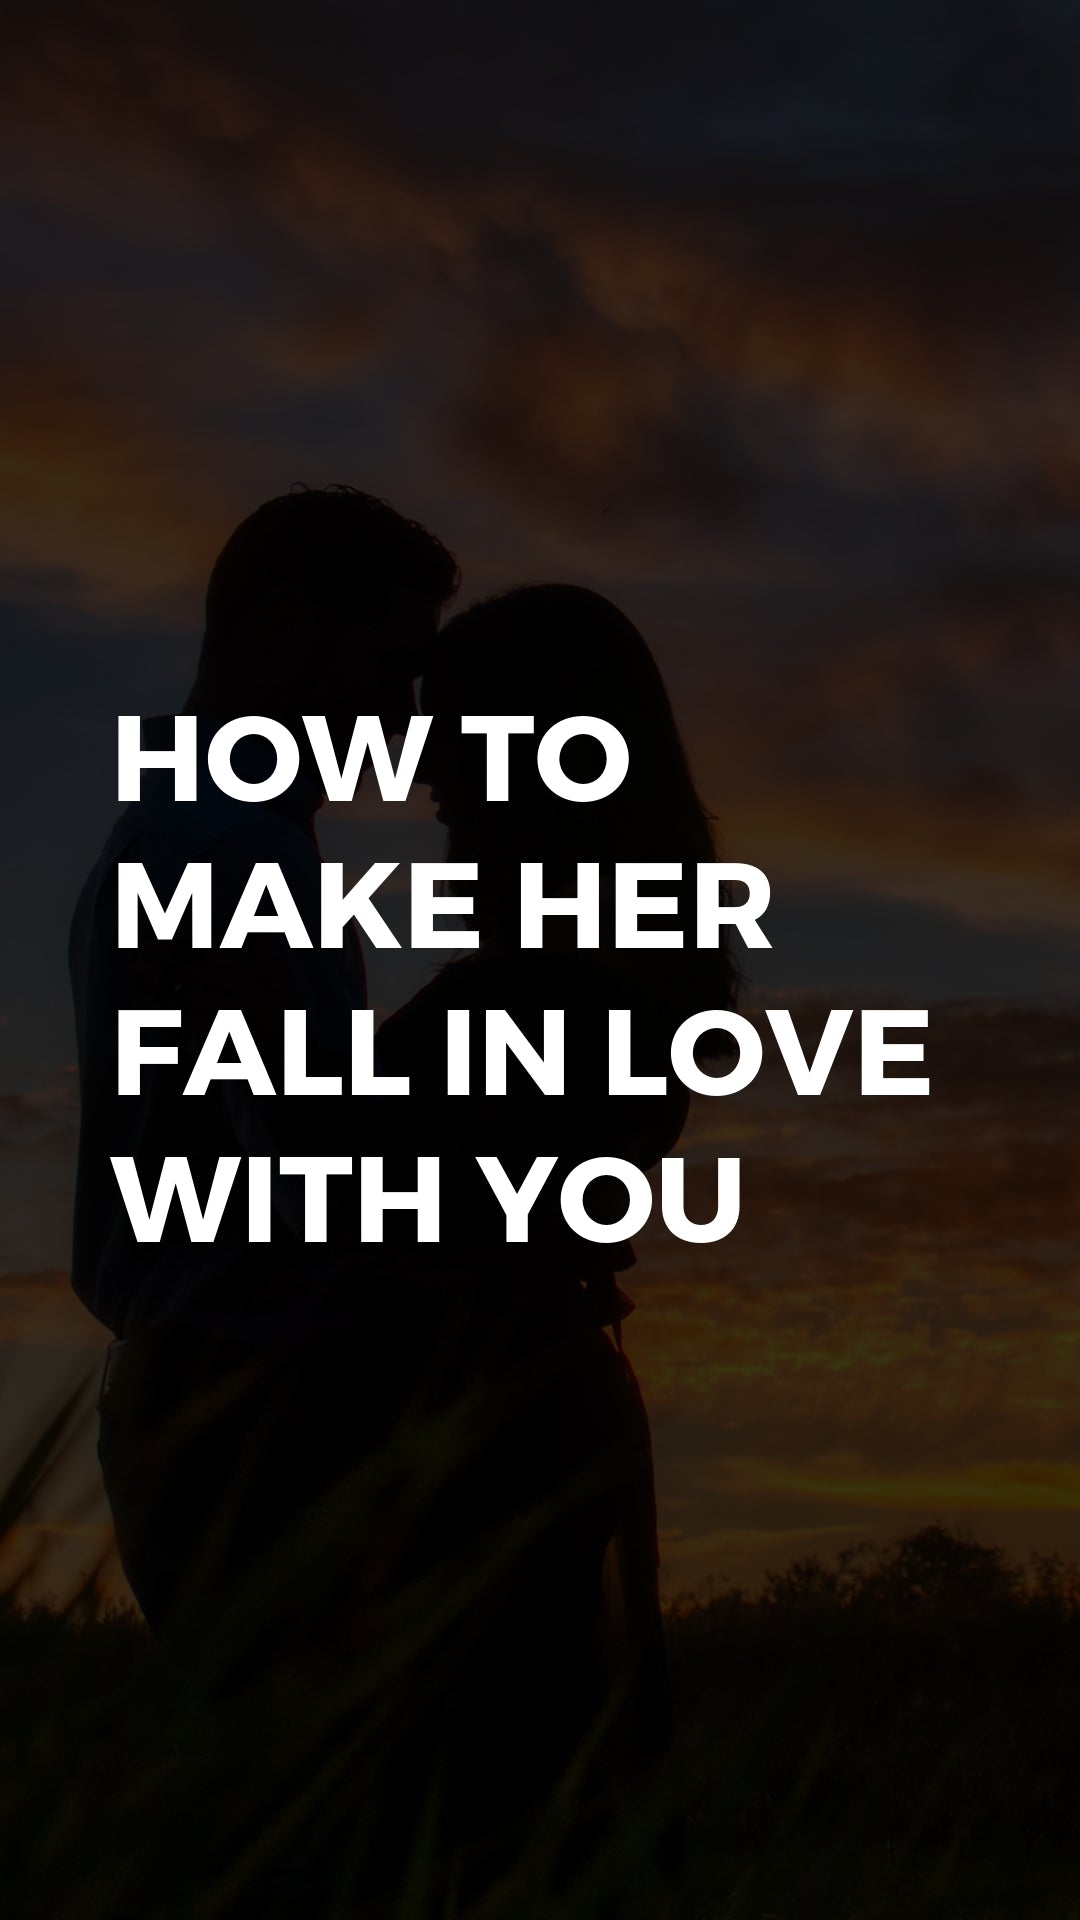 How do you get her to love you again